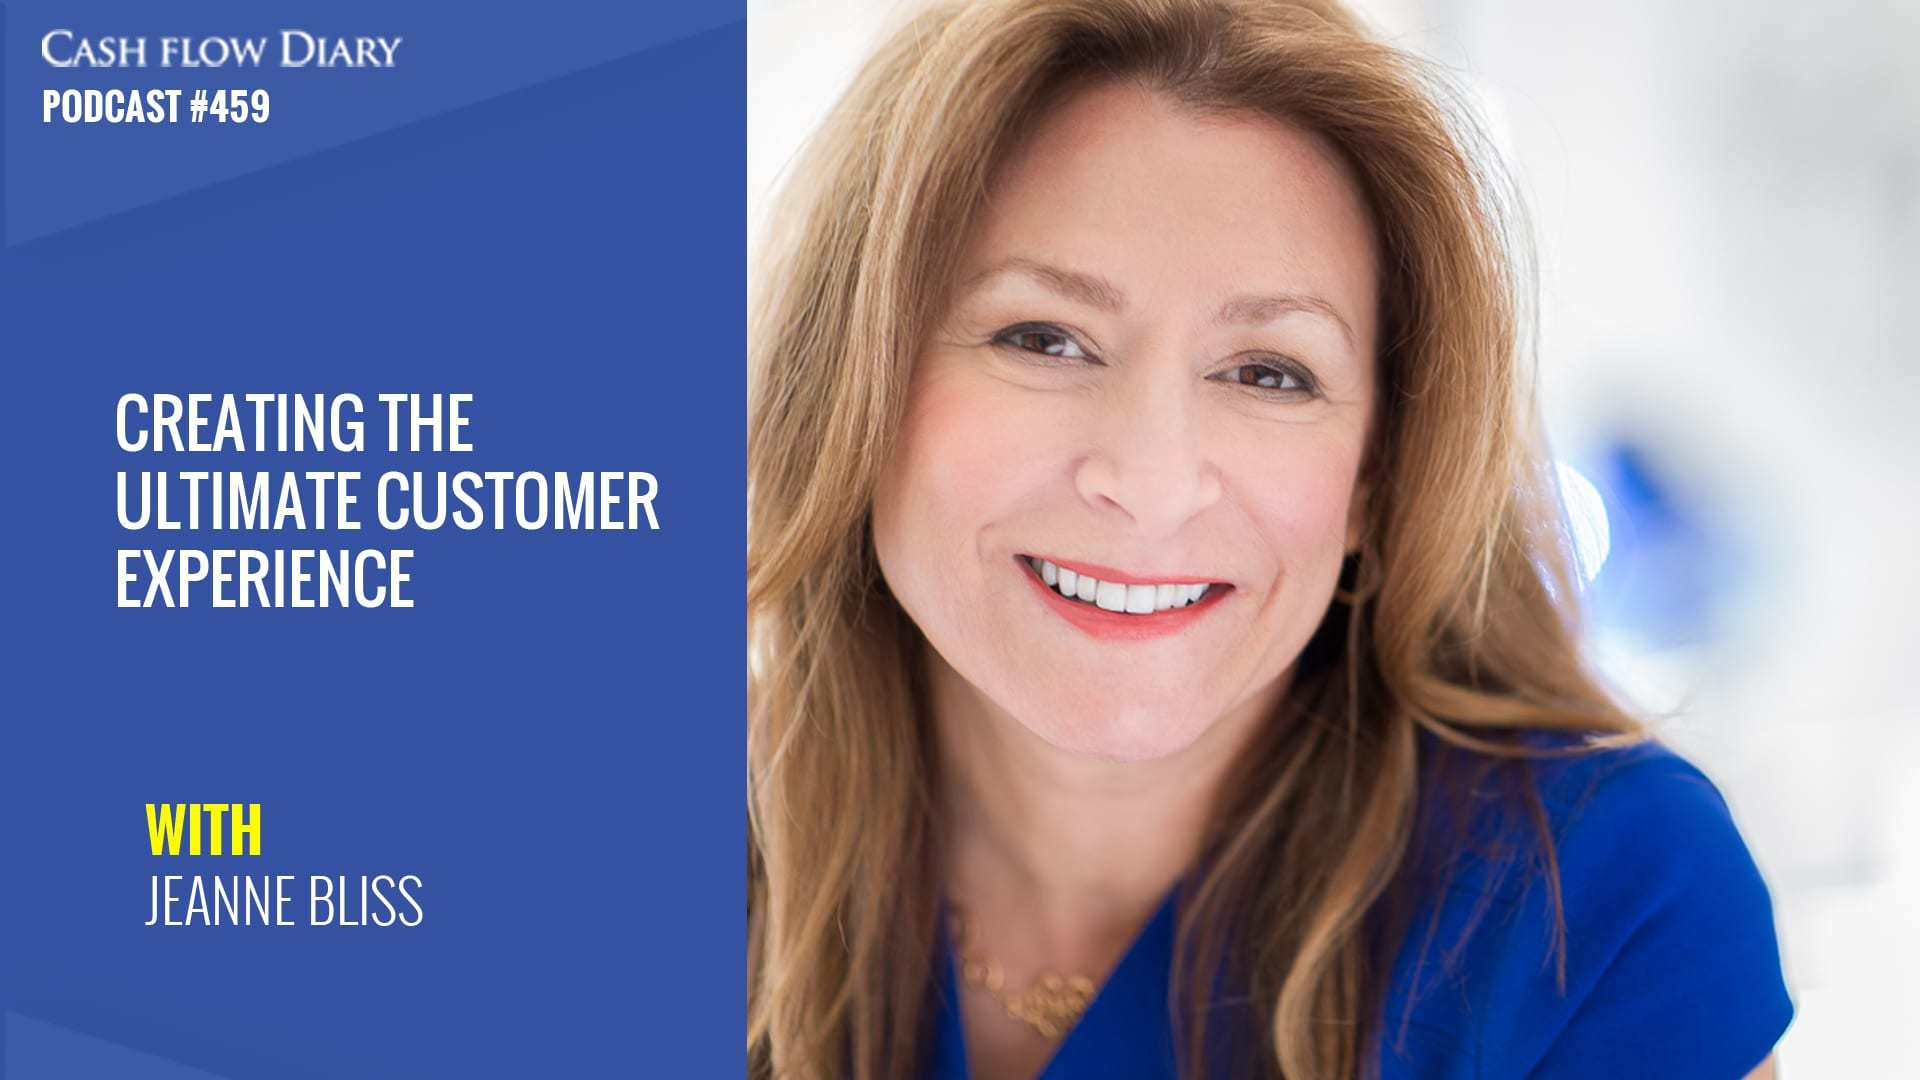 Creating the Ultimate Customer Experience with Jeanne Bliss